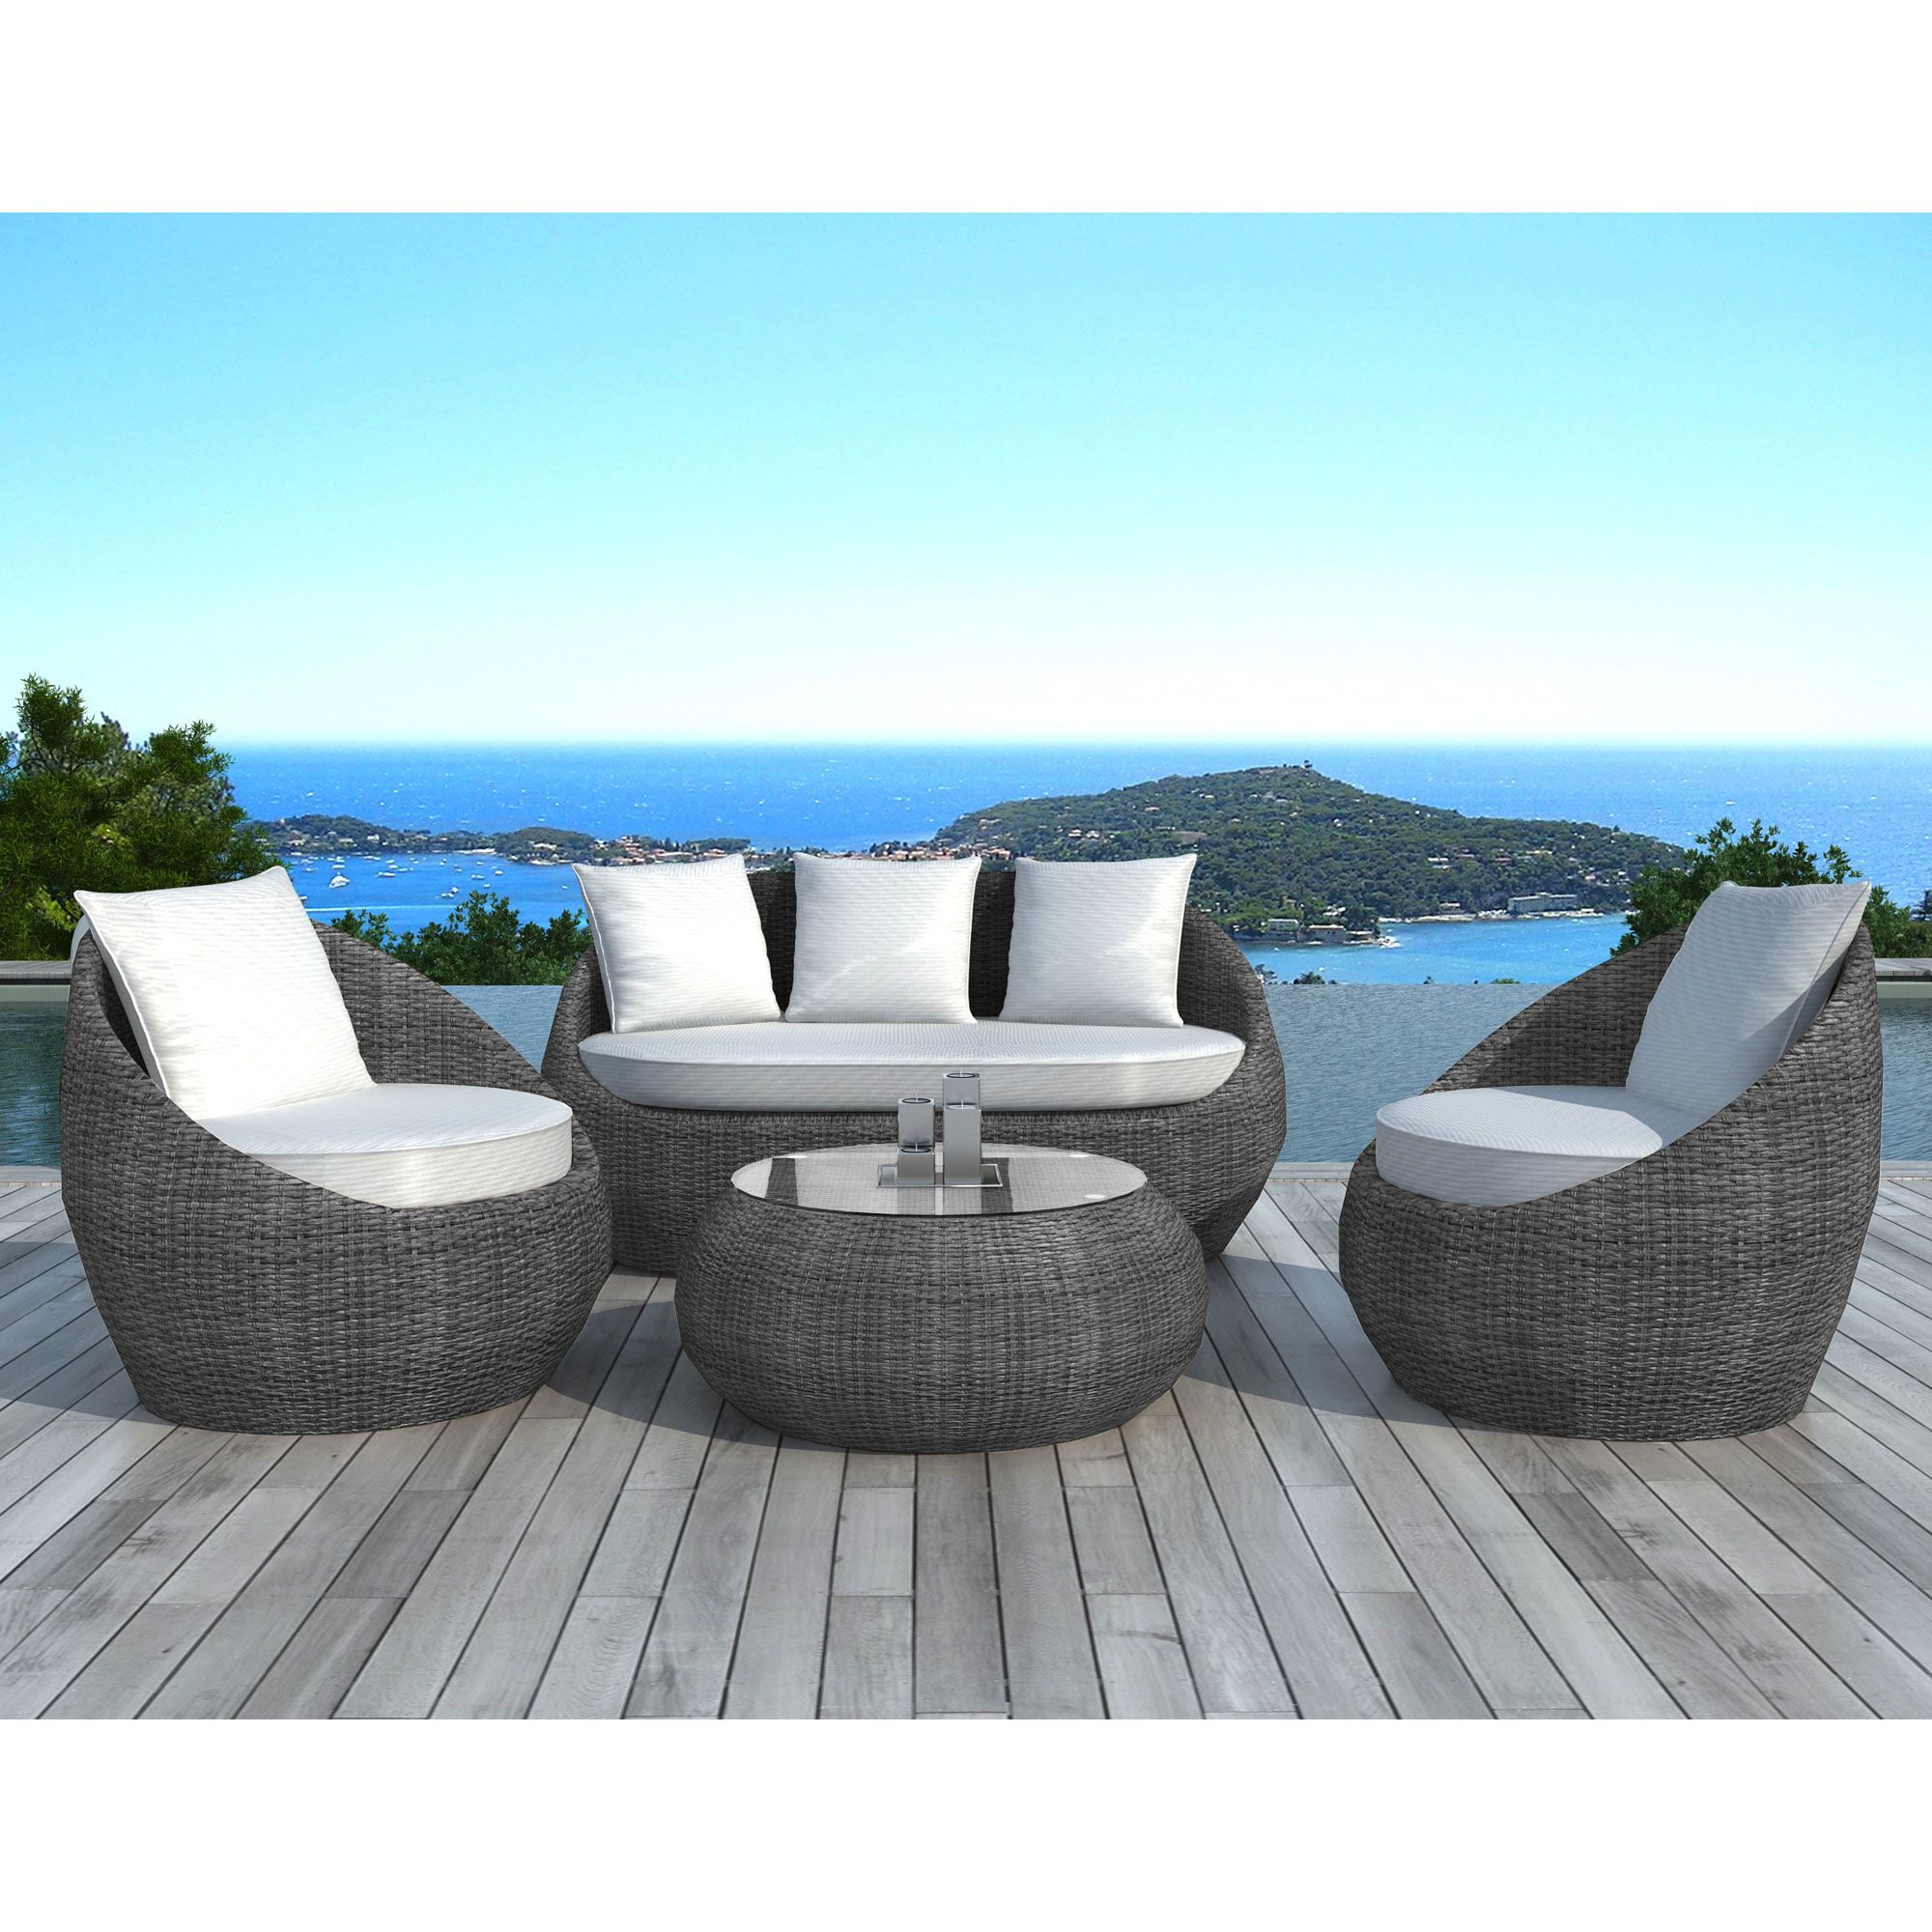 Épinglé par GA OL sur Balcon | Pinterest | Outdoor furniture sets ...